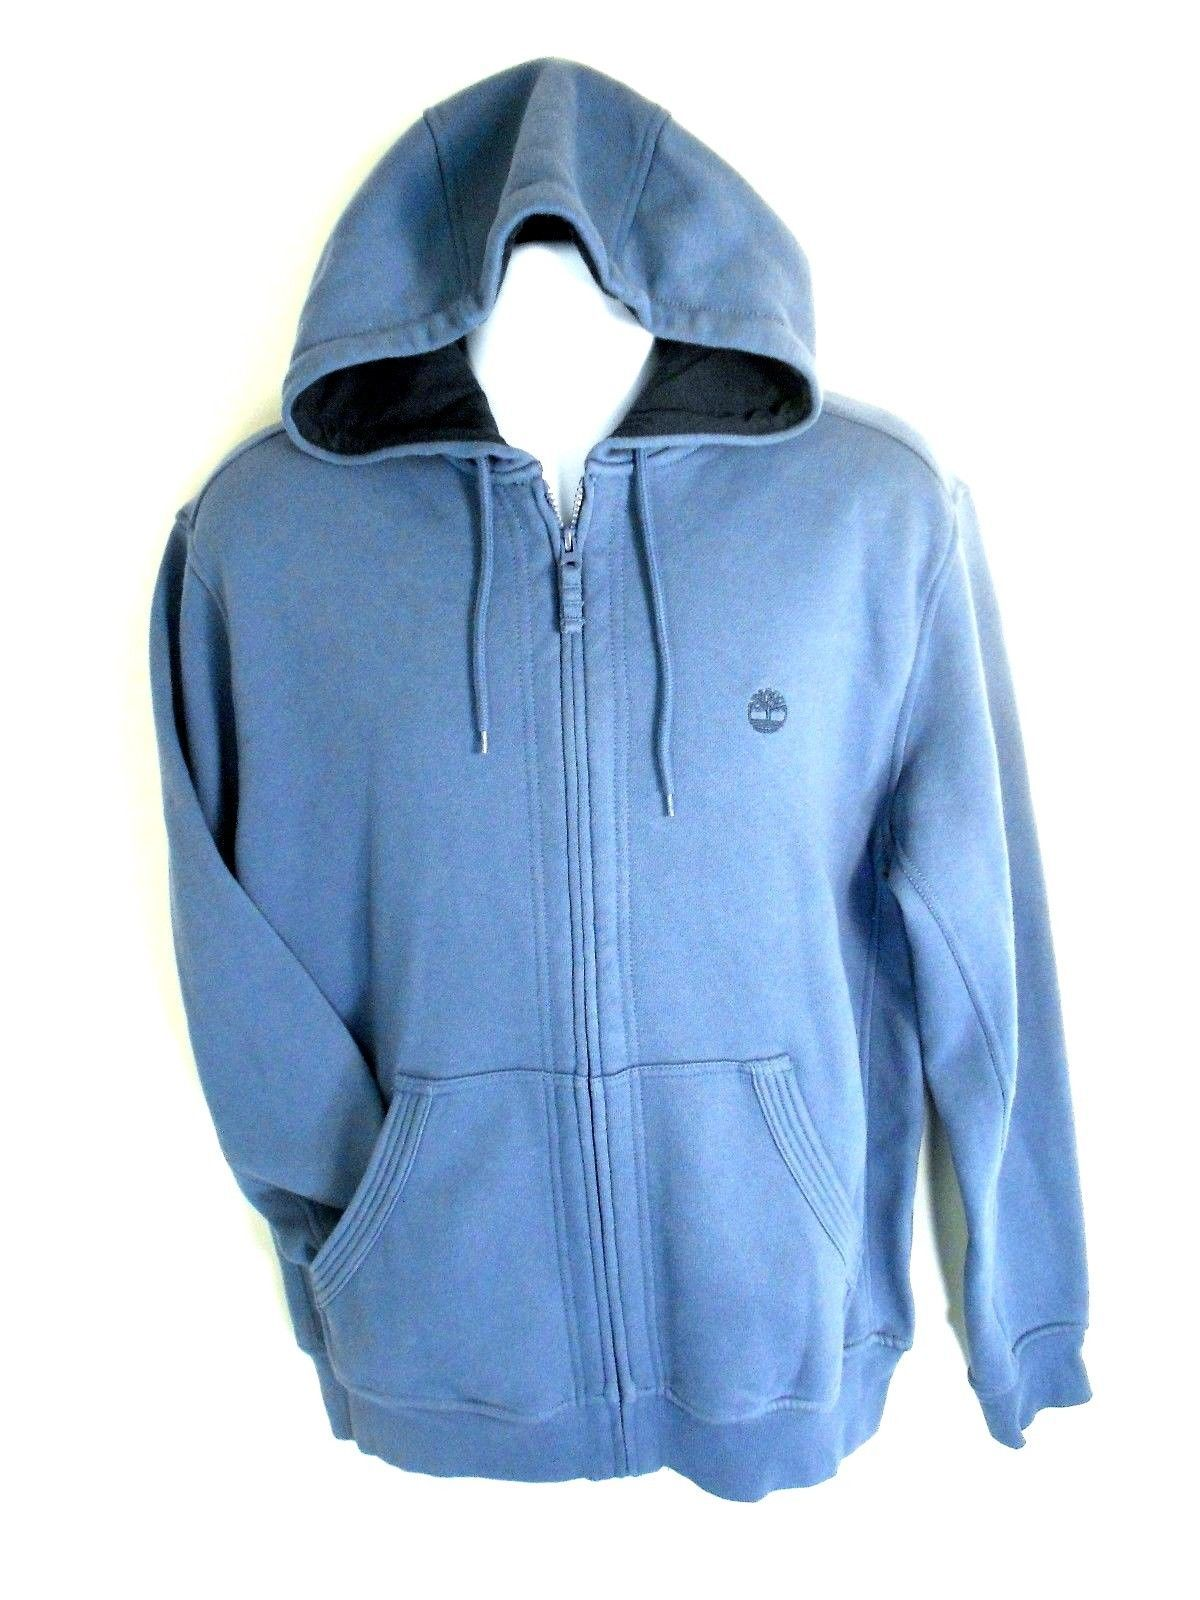 Primary image for TIMBERLAND MEN'S BLUE ESSENTIAL HOODIES SZ S, #5719J-432